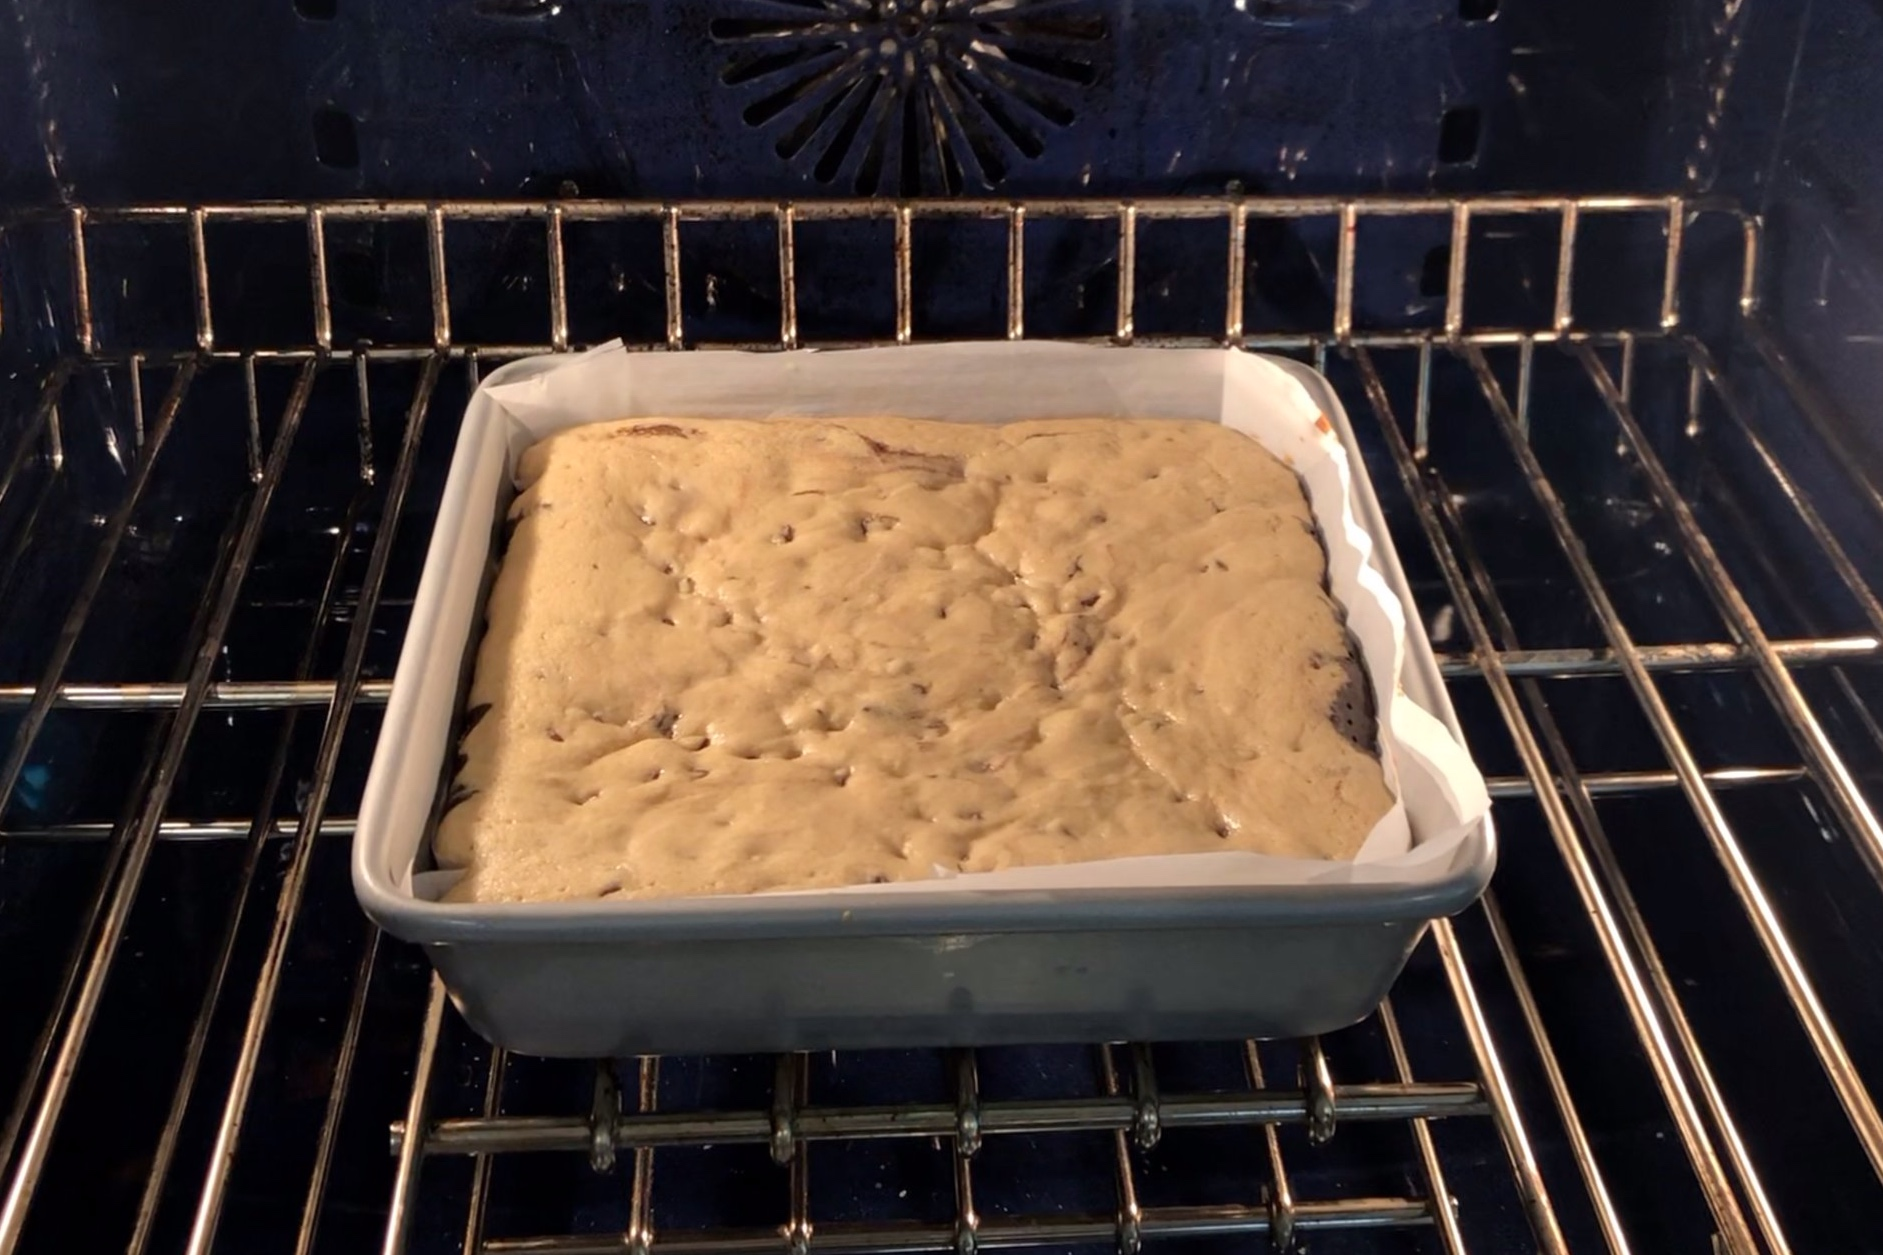 14. Bake for 30-35 minutes or until a toothpick inserted comes out clean. -